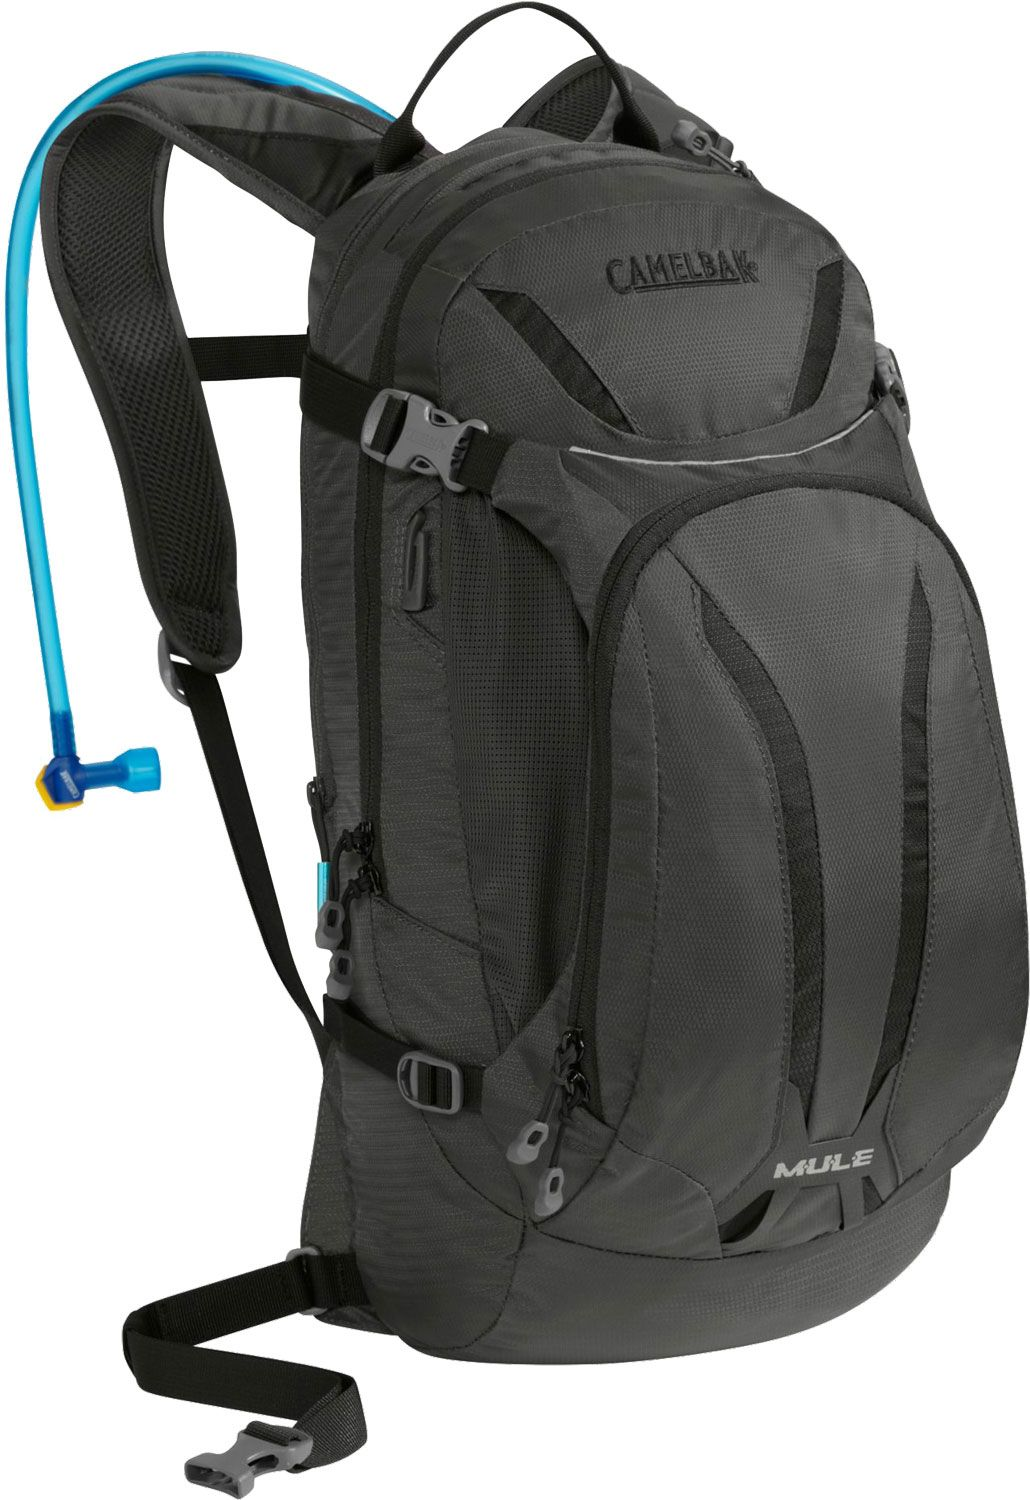 Hydration Packs | DICK'S Sporting Goods